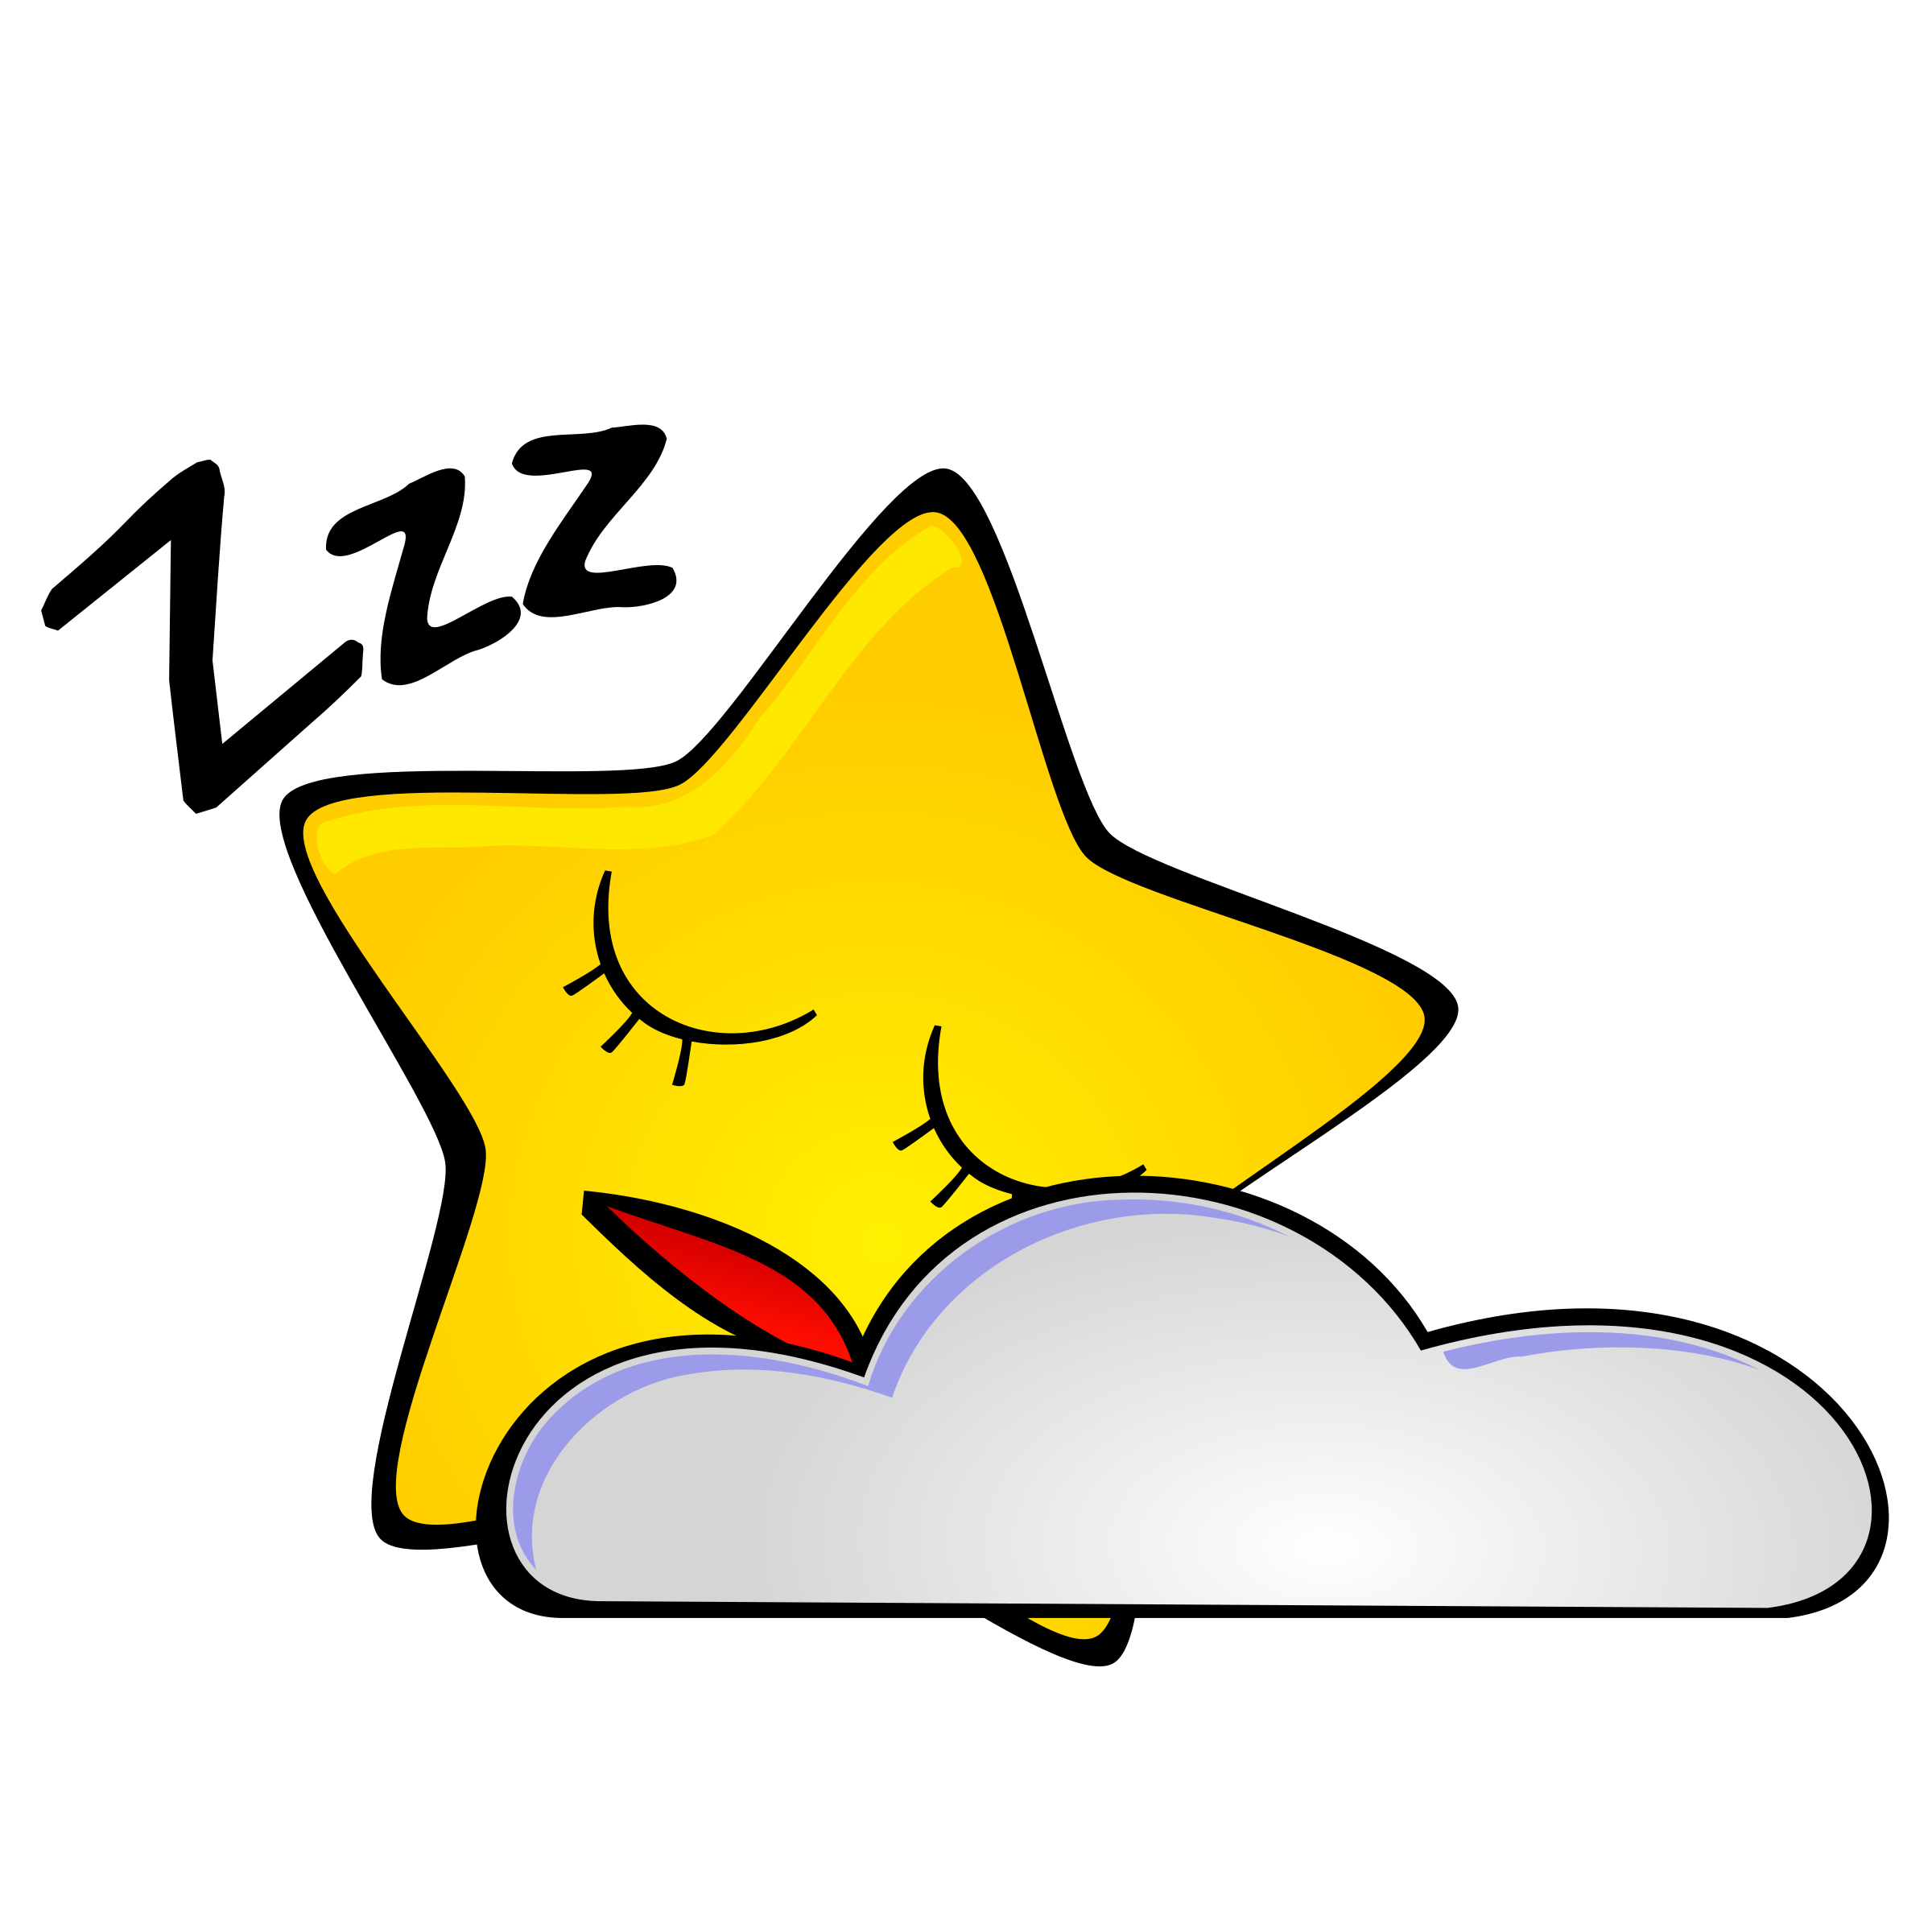 Night clipart cartoon Starry Star Star night: night: